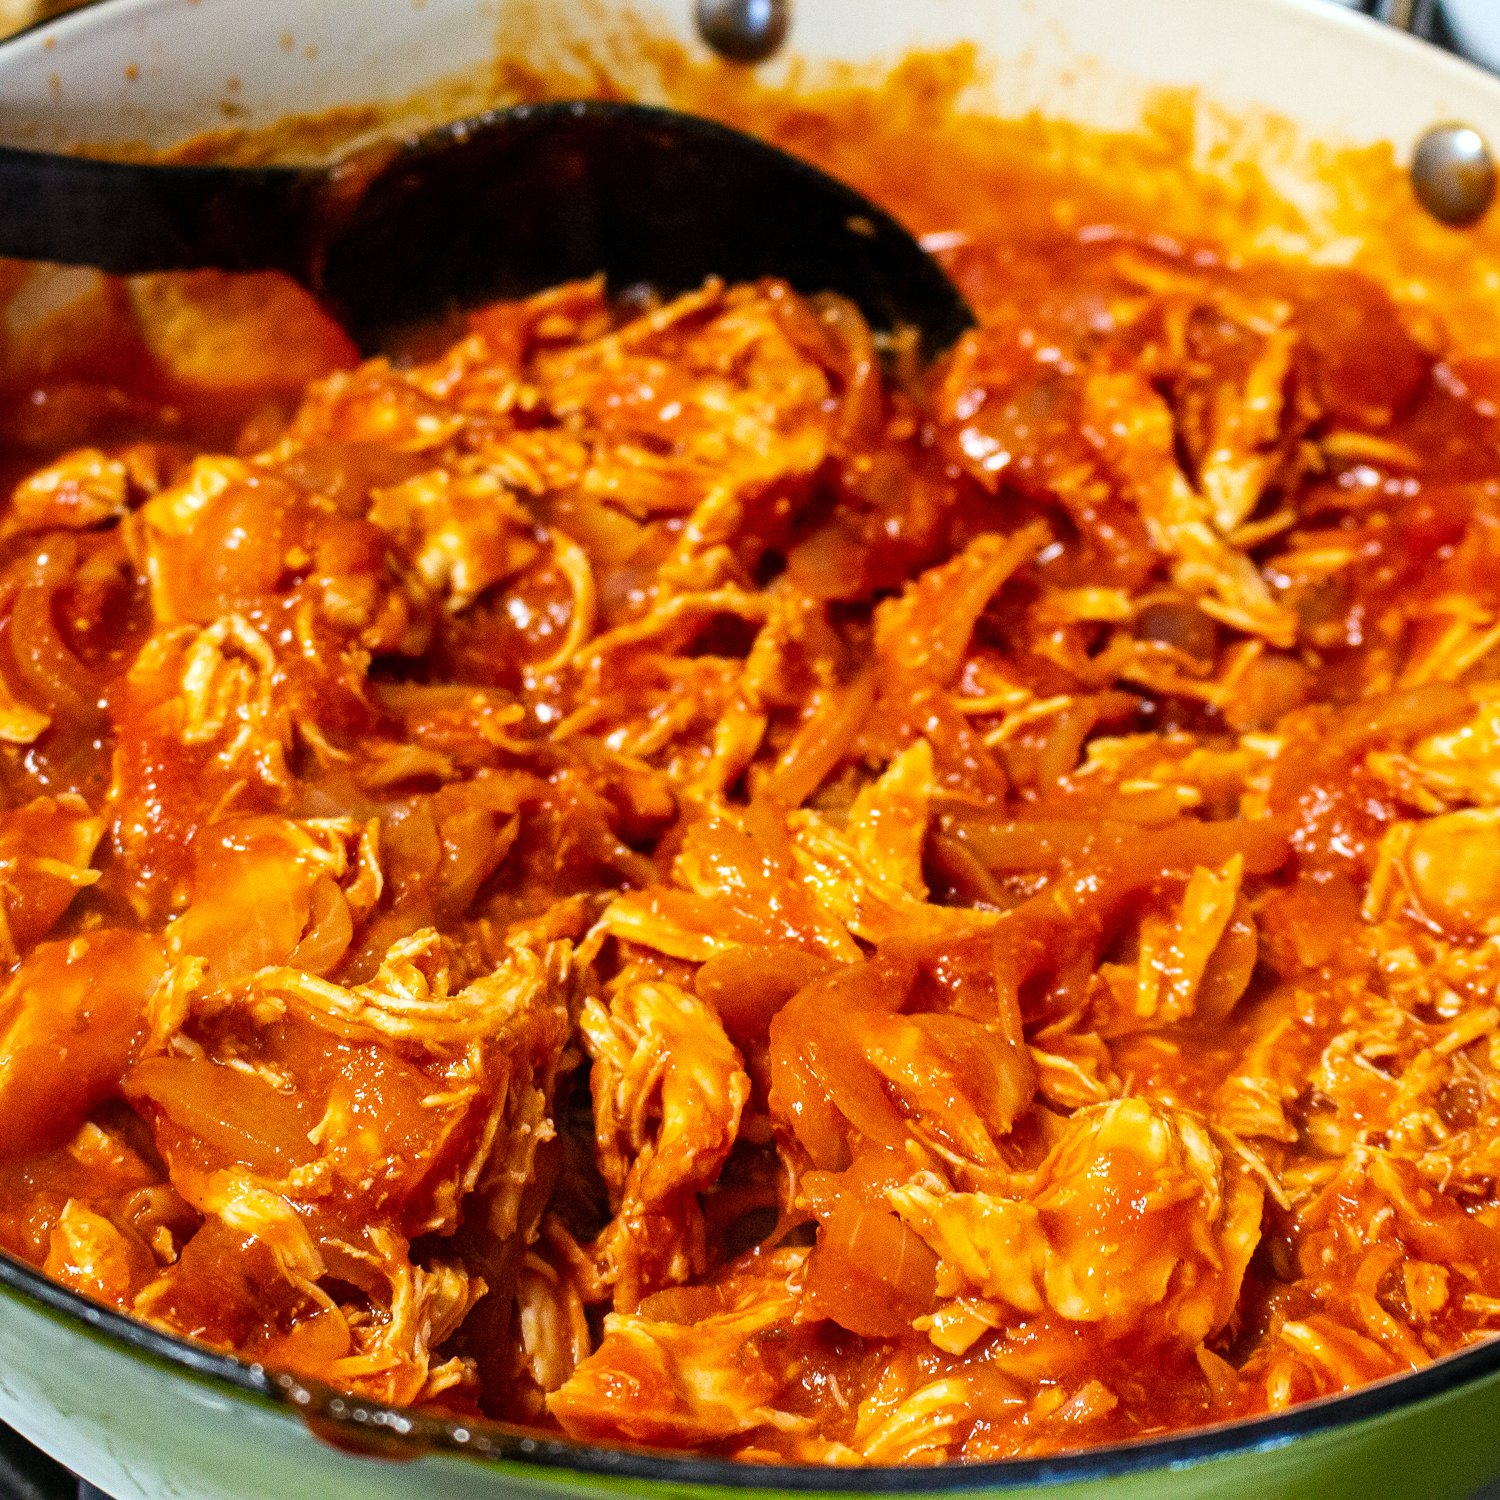 Authentic Mexican Tinga De Pollo Chicken In Chipotle Tomato Sauce